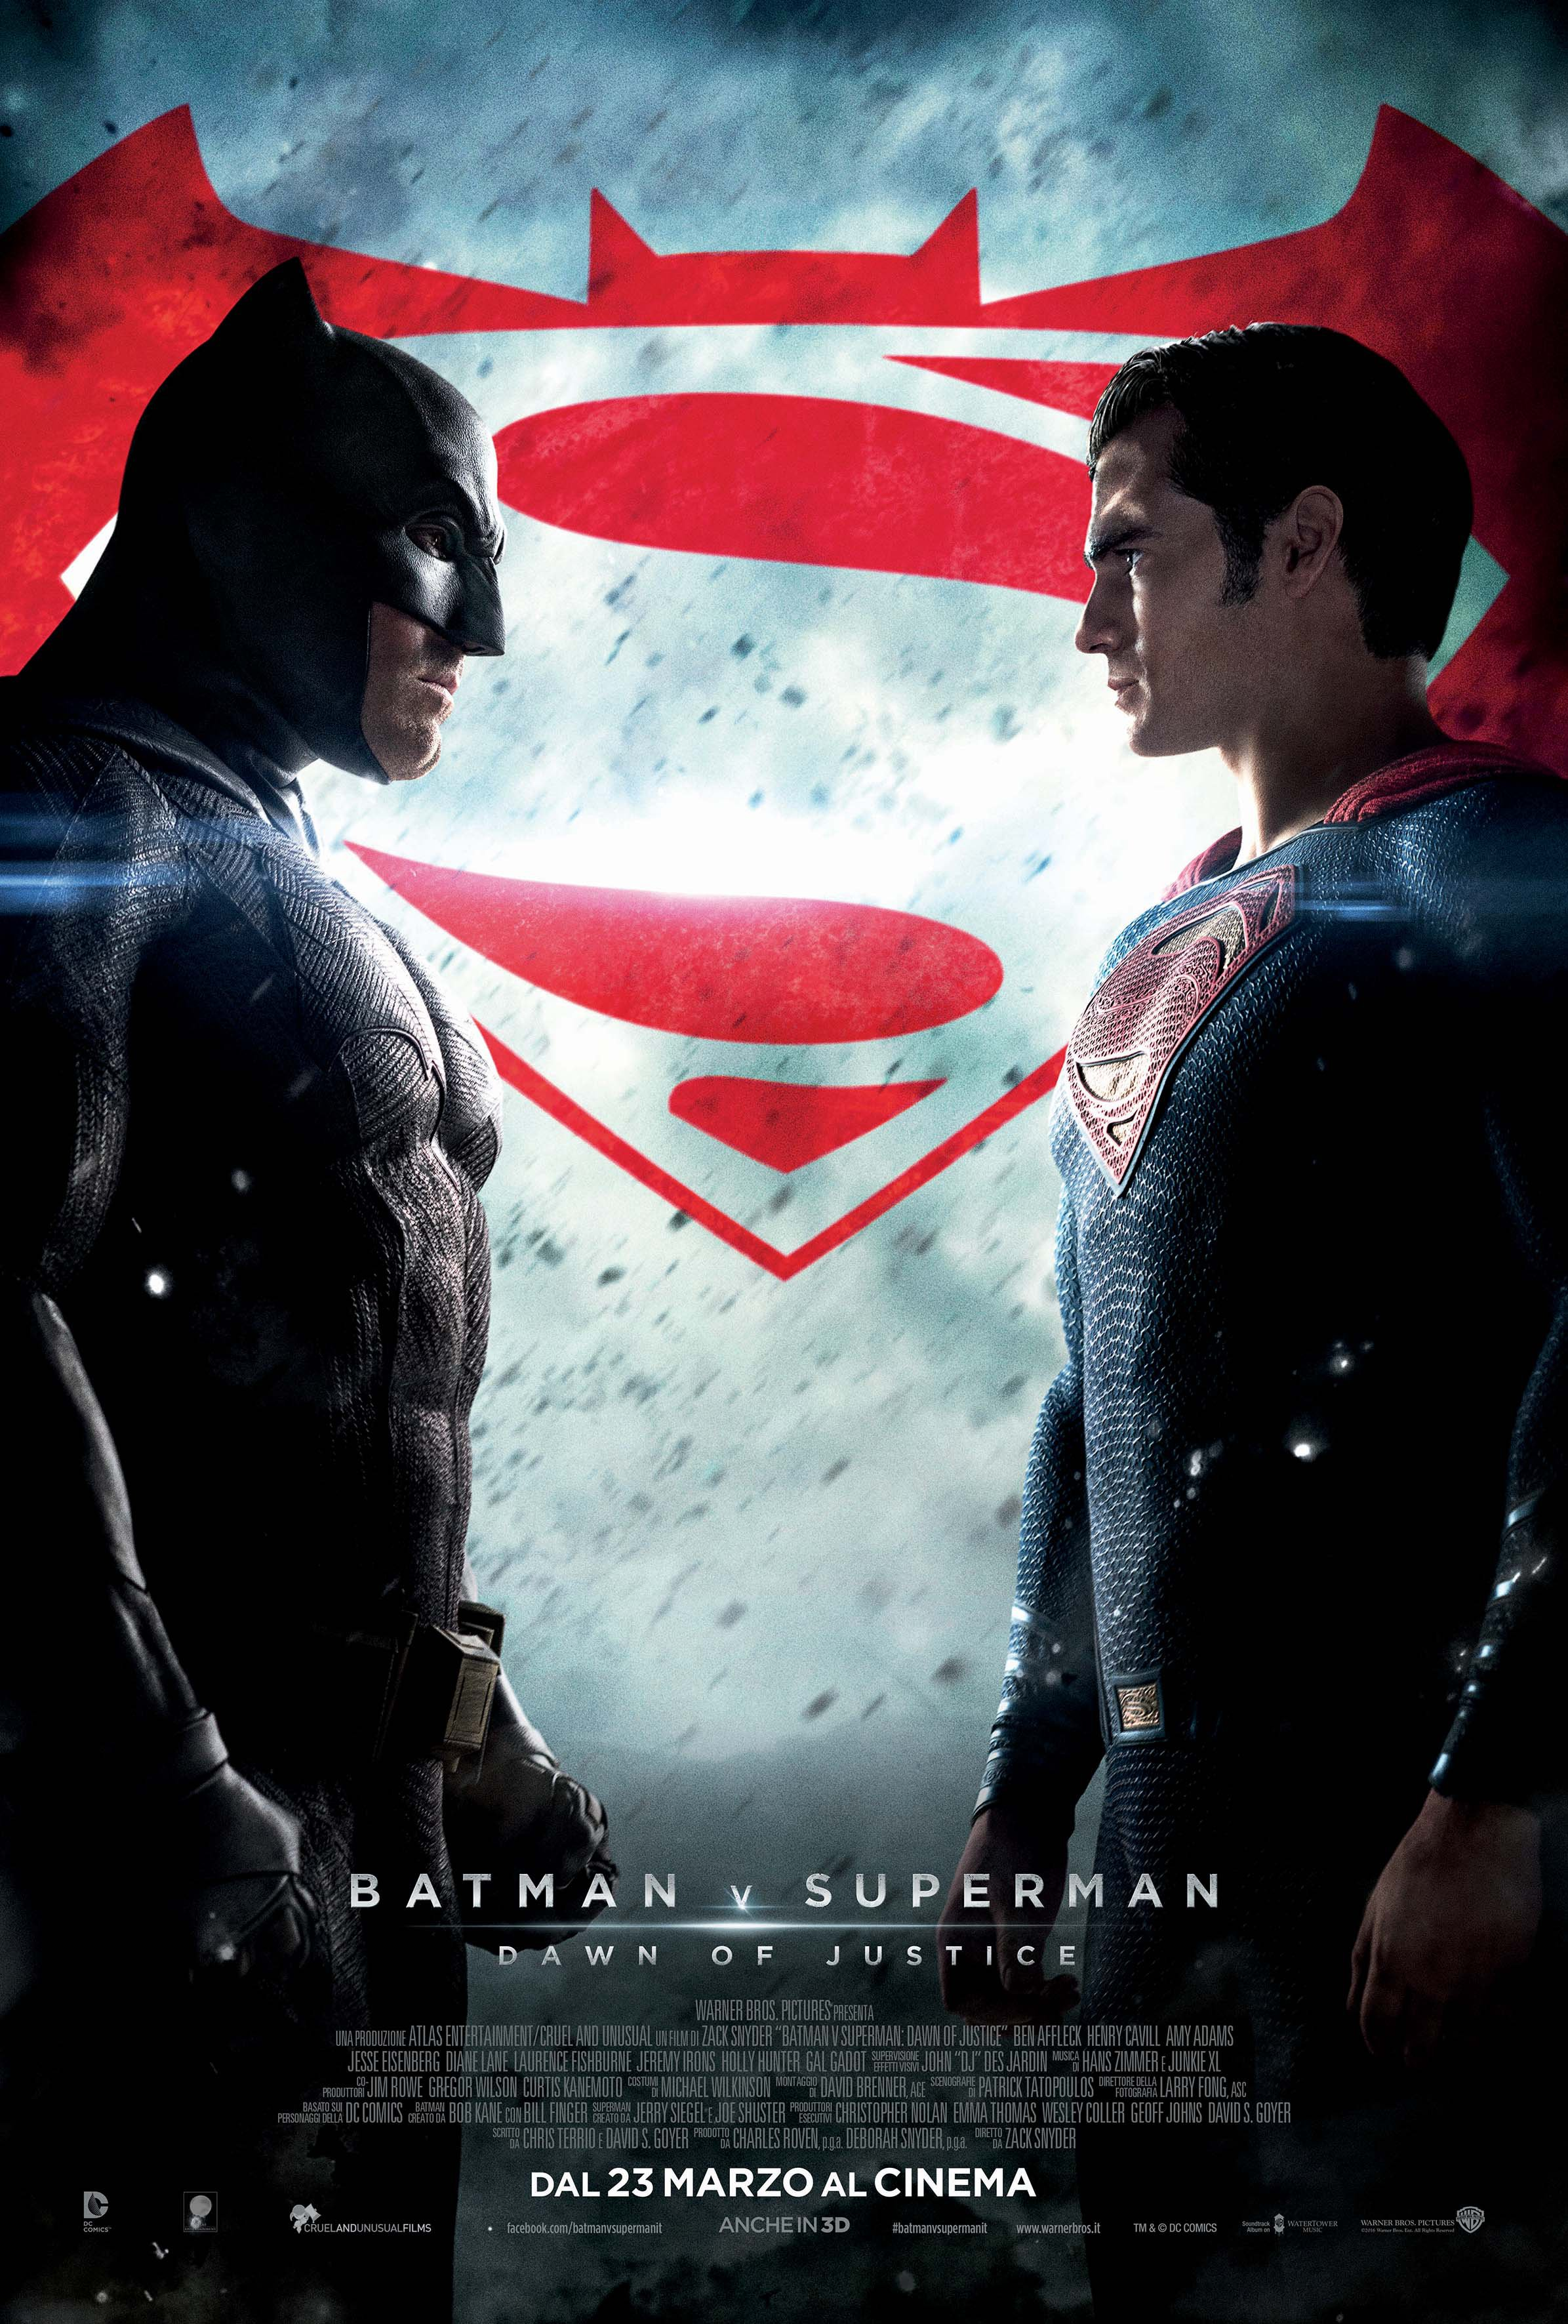 "BATMAN V SUPERMAN: DAWN OF JUSTICE Film USA 2016 in Italiano Ben Affleck – Henry Cavill   <a href='http://servedby.publy.net/ck.php?n=a68c2f7e&amp;cb=816550212′ target='_blank'><img src='http://servedby.publy.net/avw.php?zoneid=7142&amp;cb=816550212&amp;n=a68c2f7e' border='0′ alt="" /></a> <a href='http://servedby.publy.net/ck.php?n=aa513ff5&amp;cb=1265060698′ target='_blank'><img src='http://servedby.publy.net/avw.php?zoneid=7143&amp;cb=1265060698&amp;n=aa513ff5′ border='0′ alt="" /></a> […]"